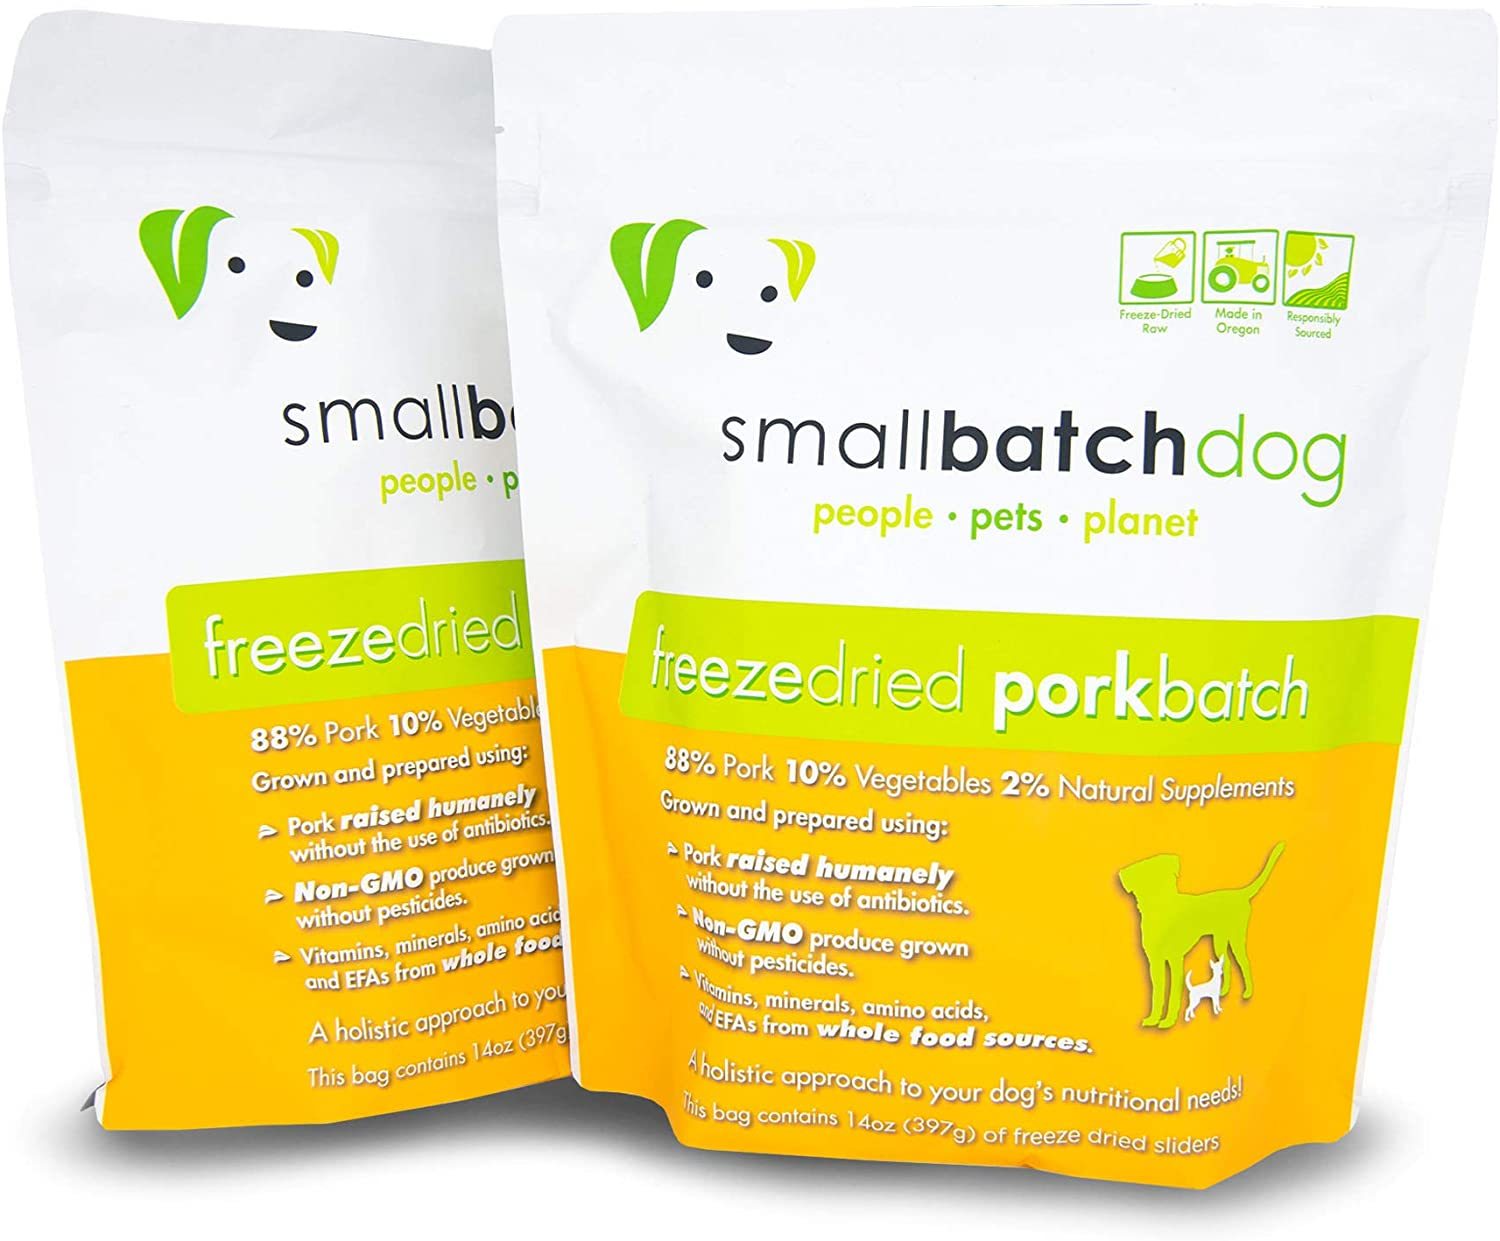 Smallbatch Pets Freeze-Dried Premium Raw Food Diet for Dogs, 2-Pack, Pork Recipe, 14 oz in Each Bag (28 oz Total), Made in The USA, Organic Produce, Humanely Raised Meat, Hydrate and Serve Patties